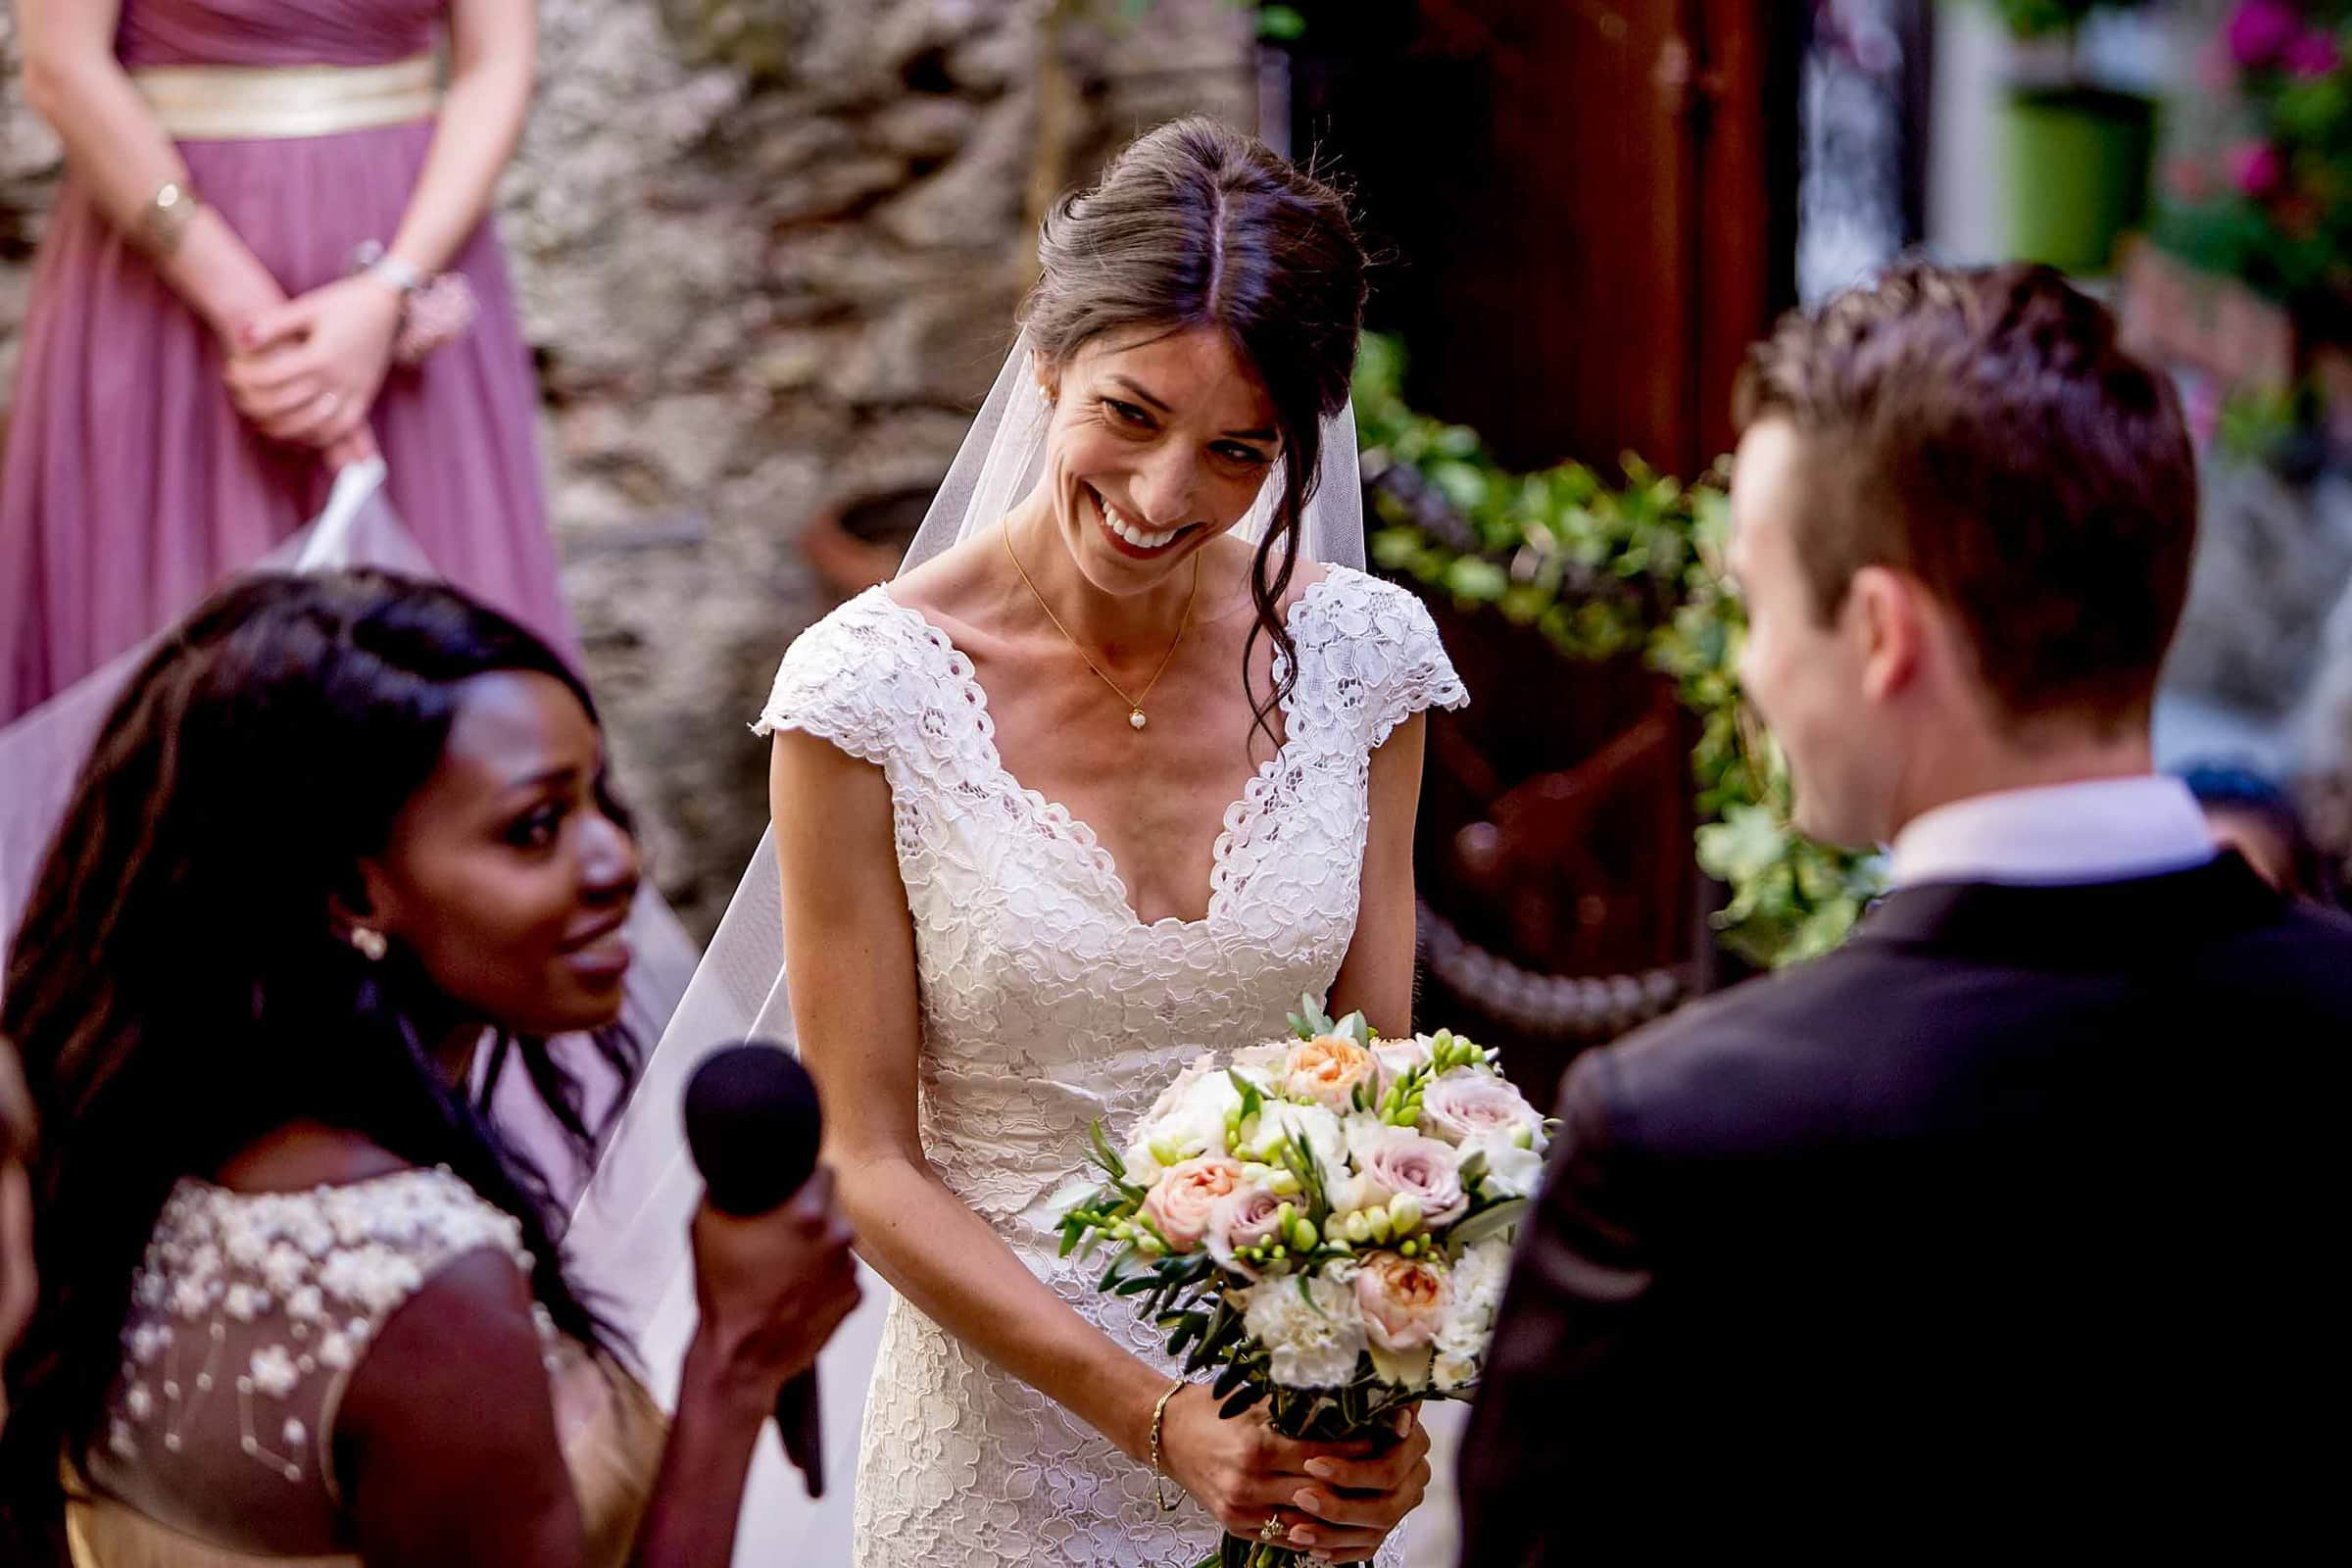 A happy bride during a Chateau Zen wedding ceremony in the South of France near Montepelier.